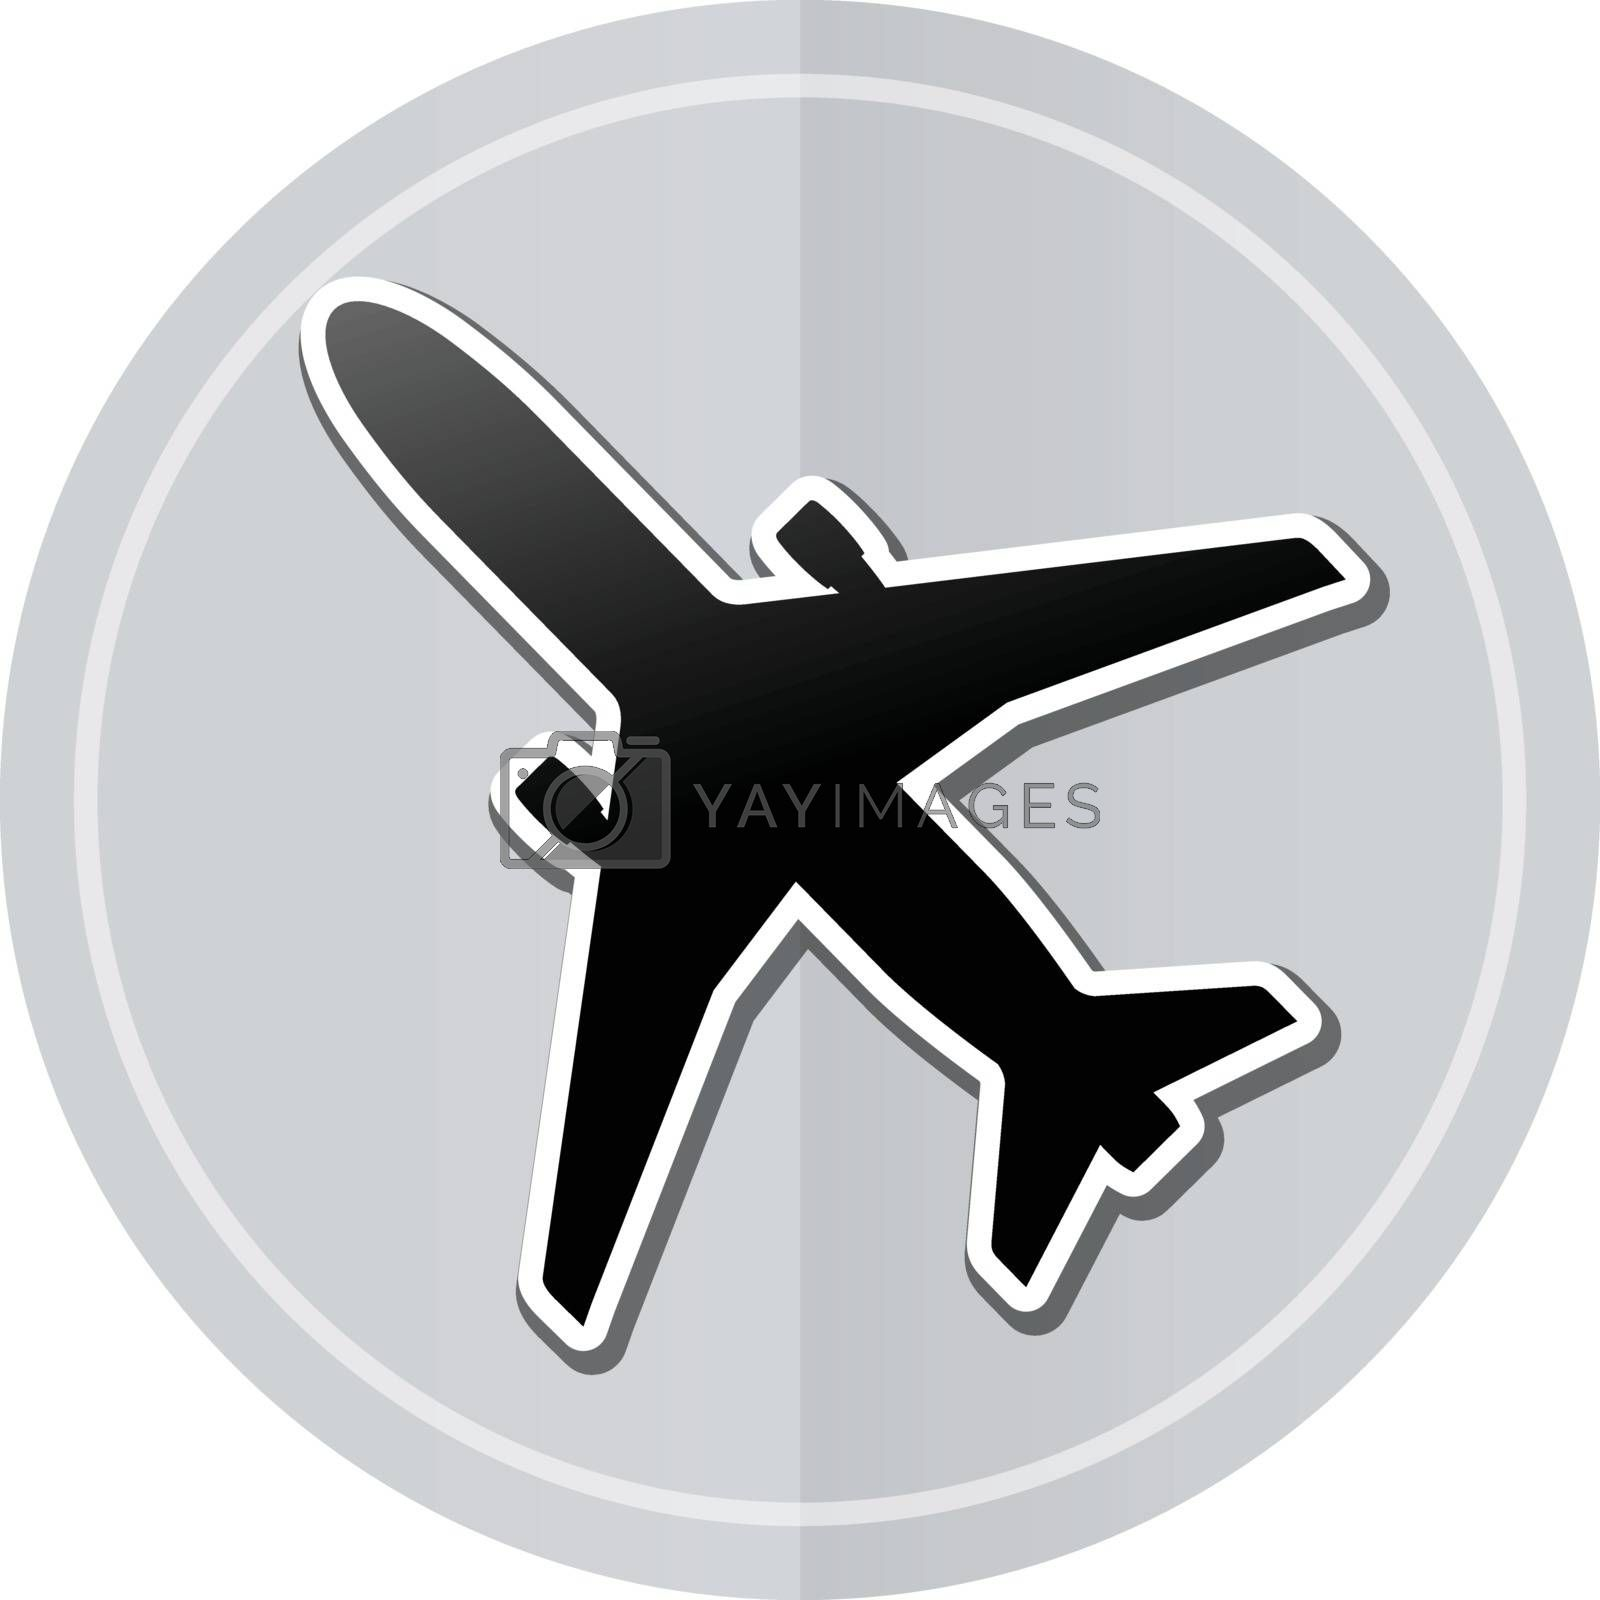 Illustration of airplane sticker icon simple design